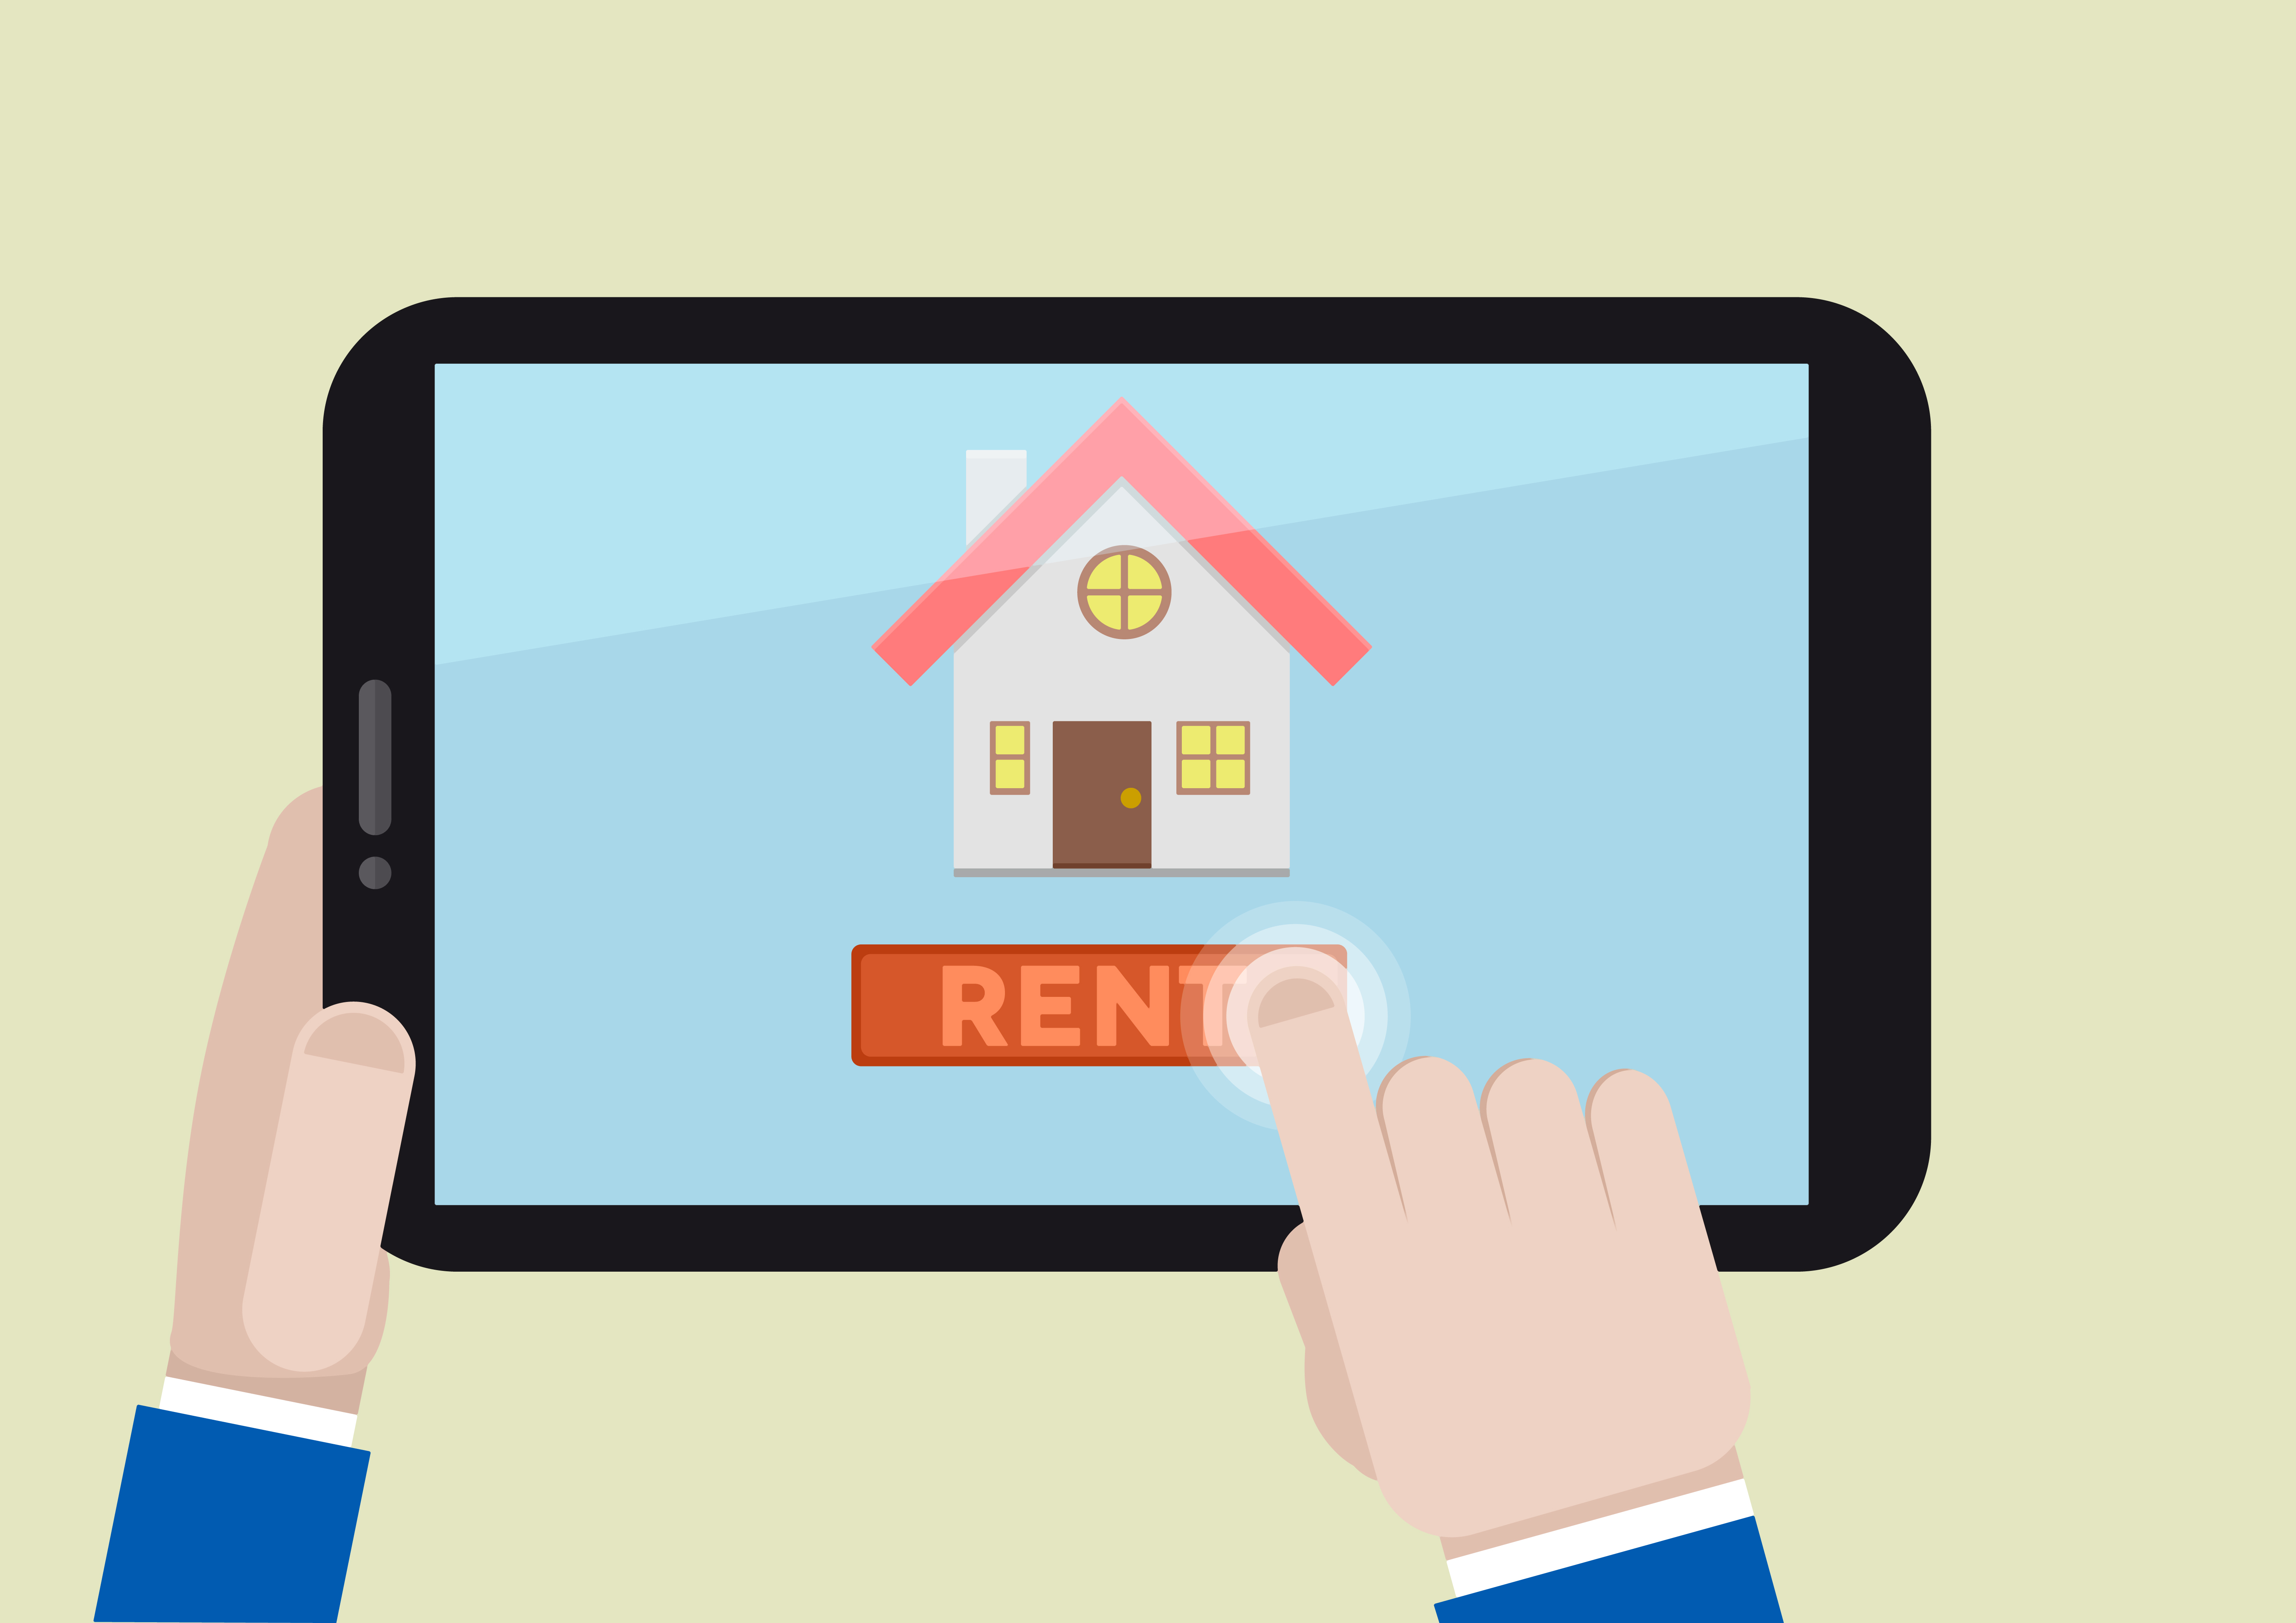 Illustration of renting a house